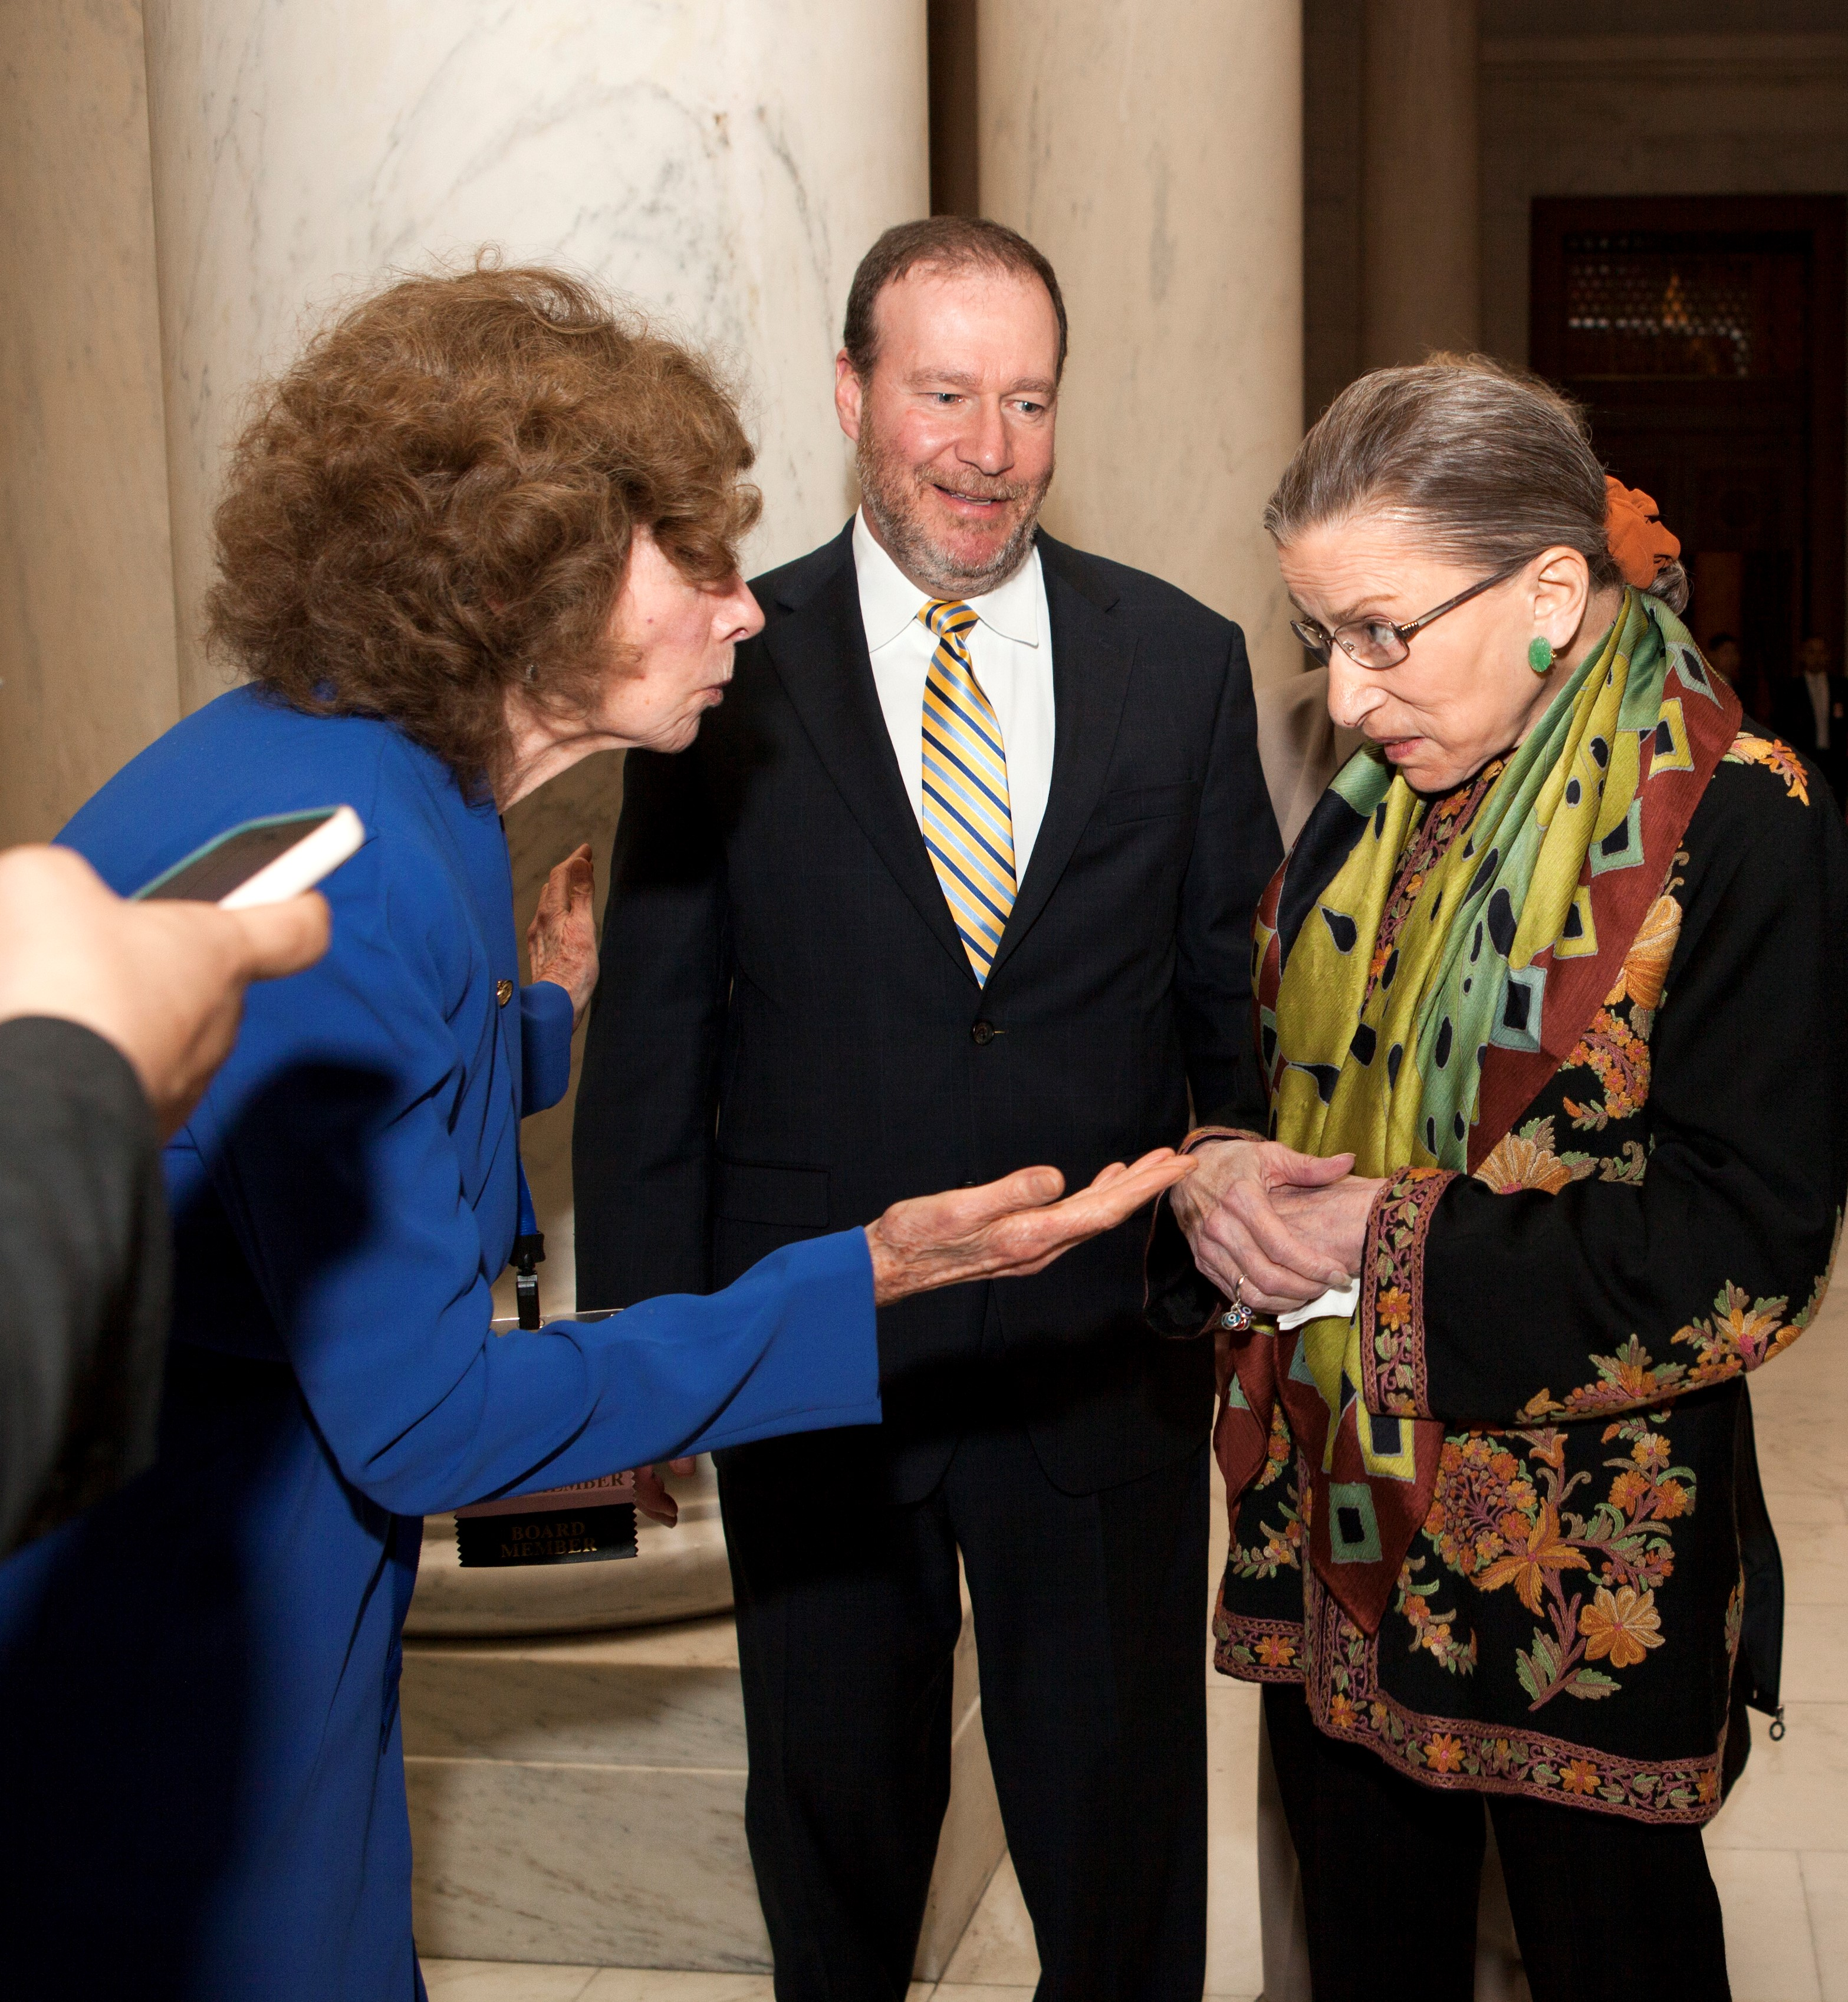 justice-ginsburg-and-judge-breen-greco.jpg